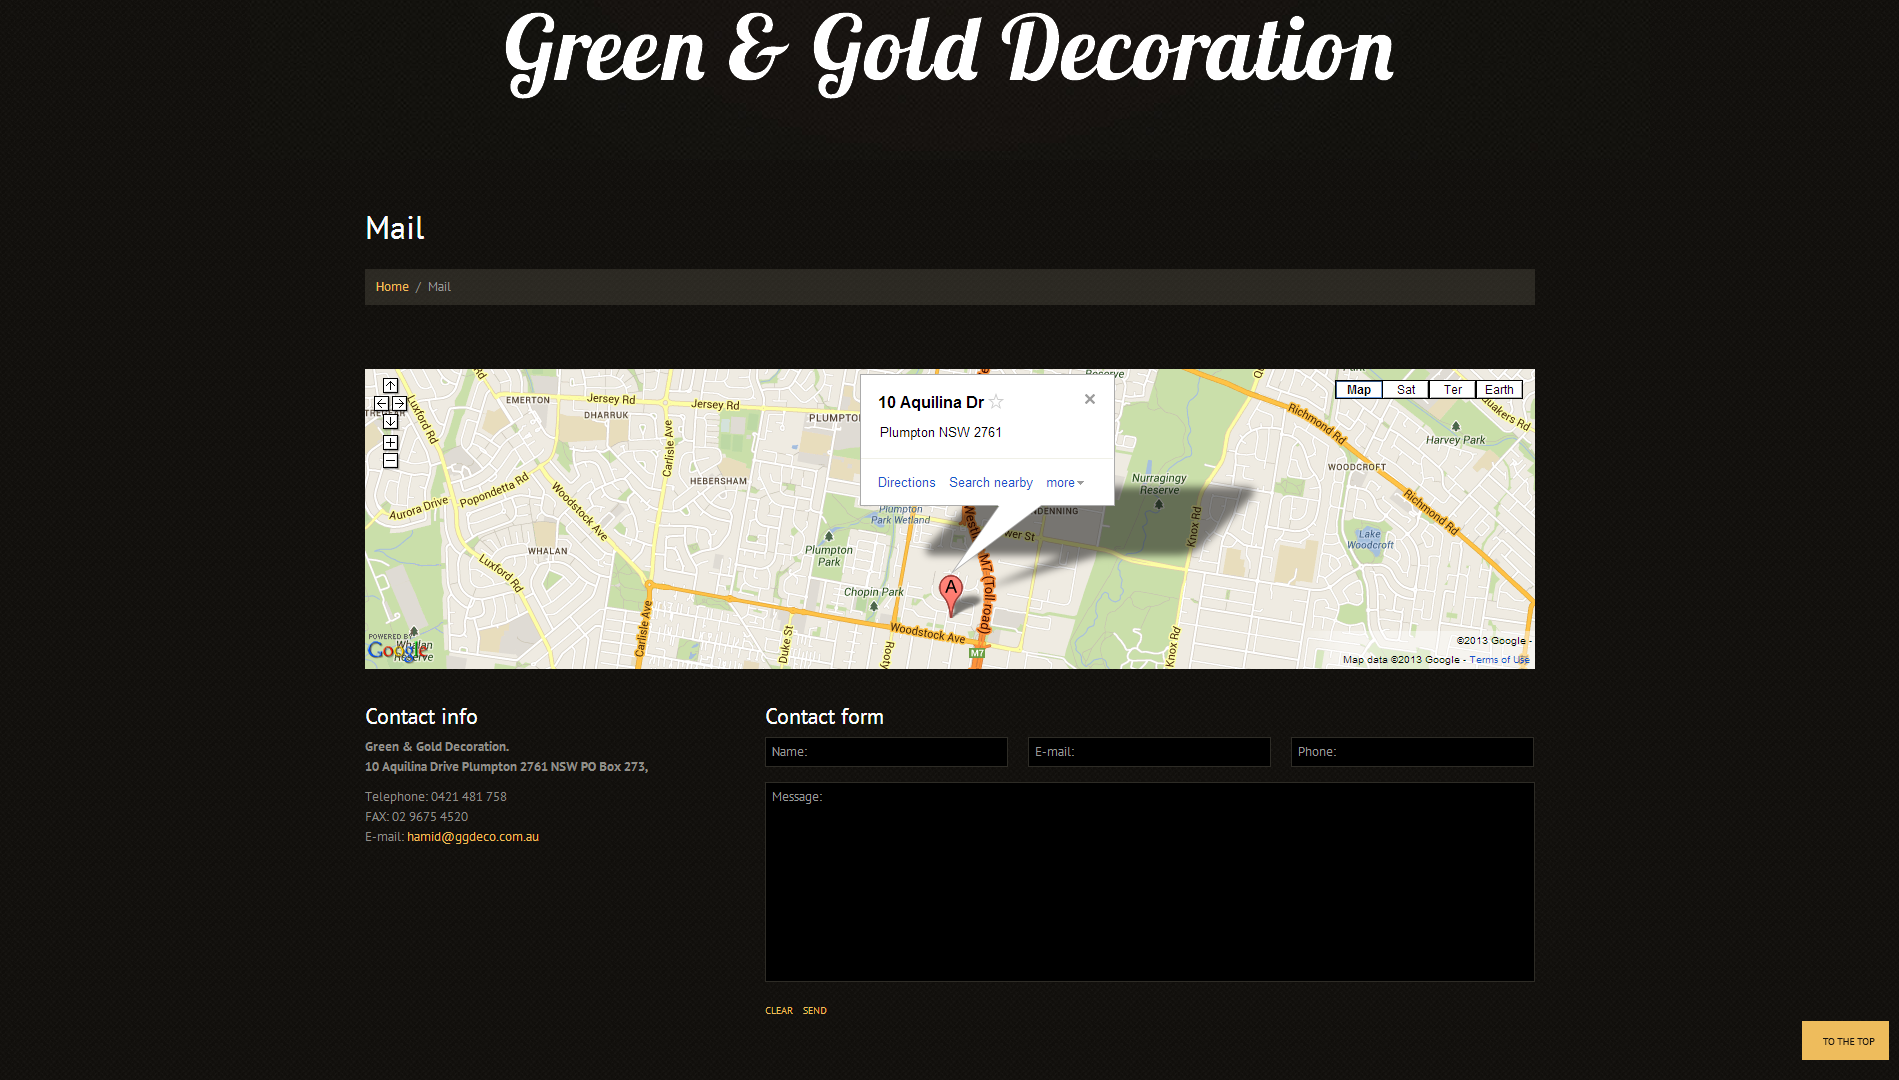 Green and Gold Decoration Website Design